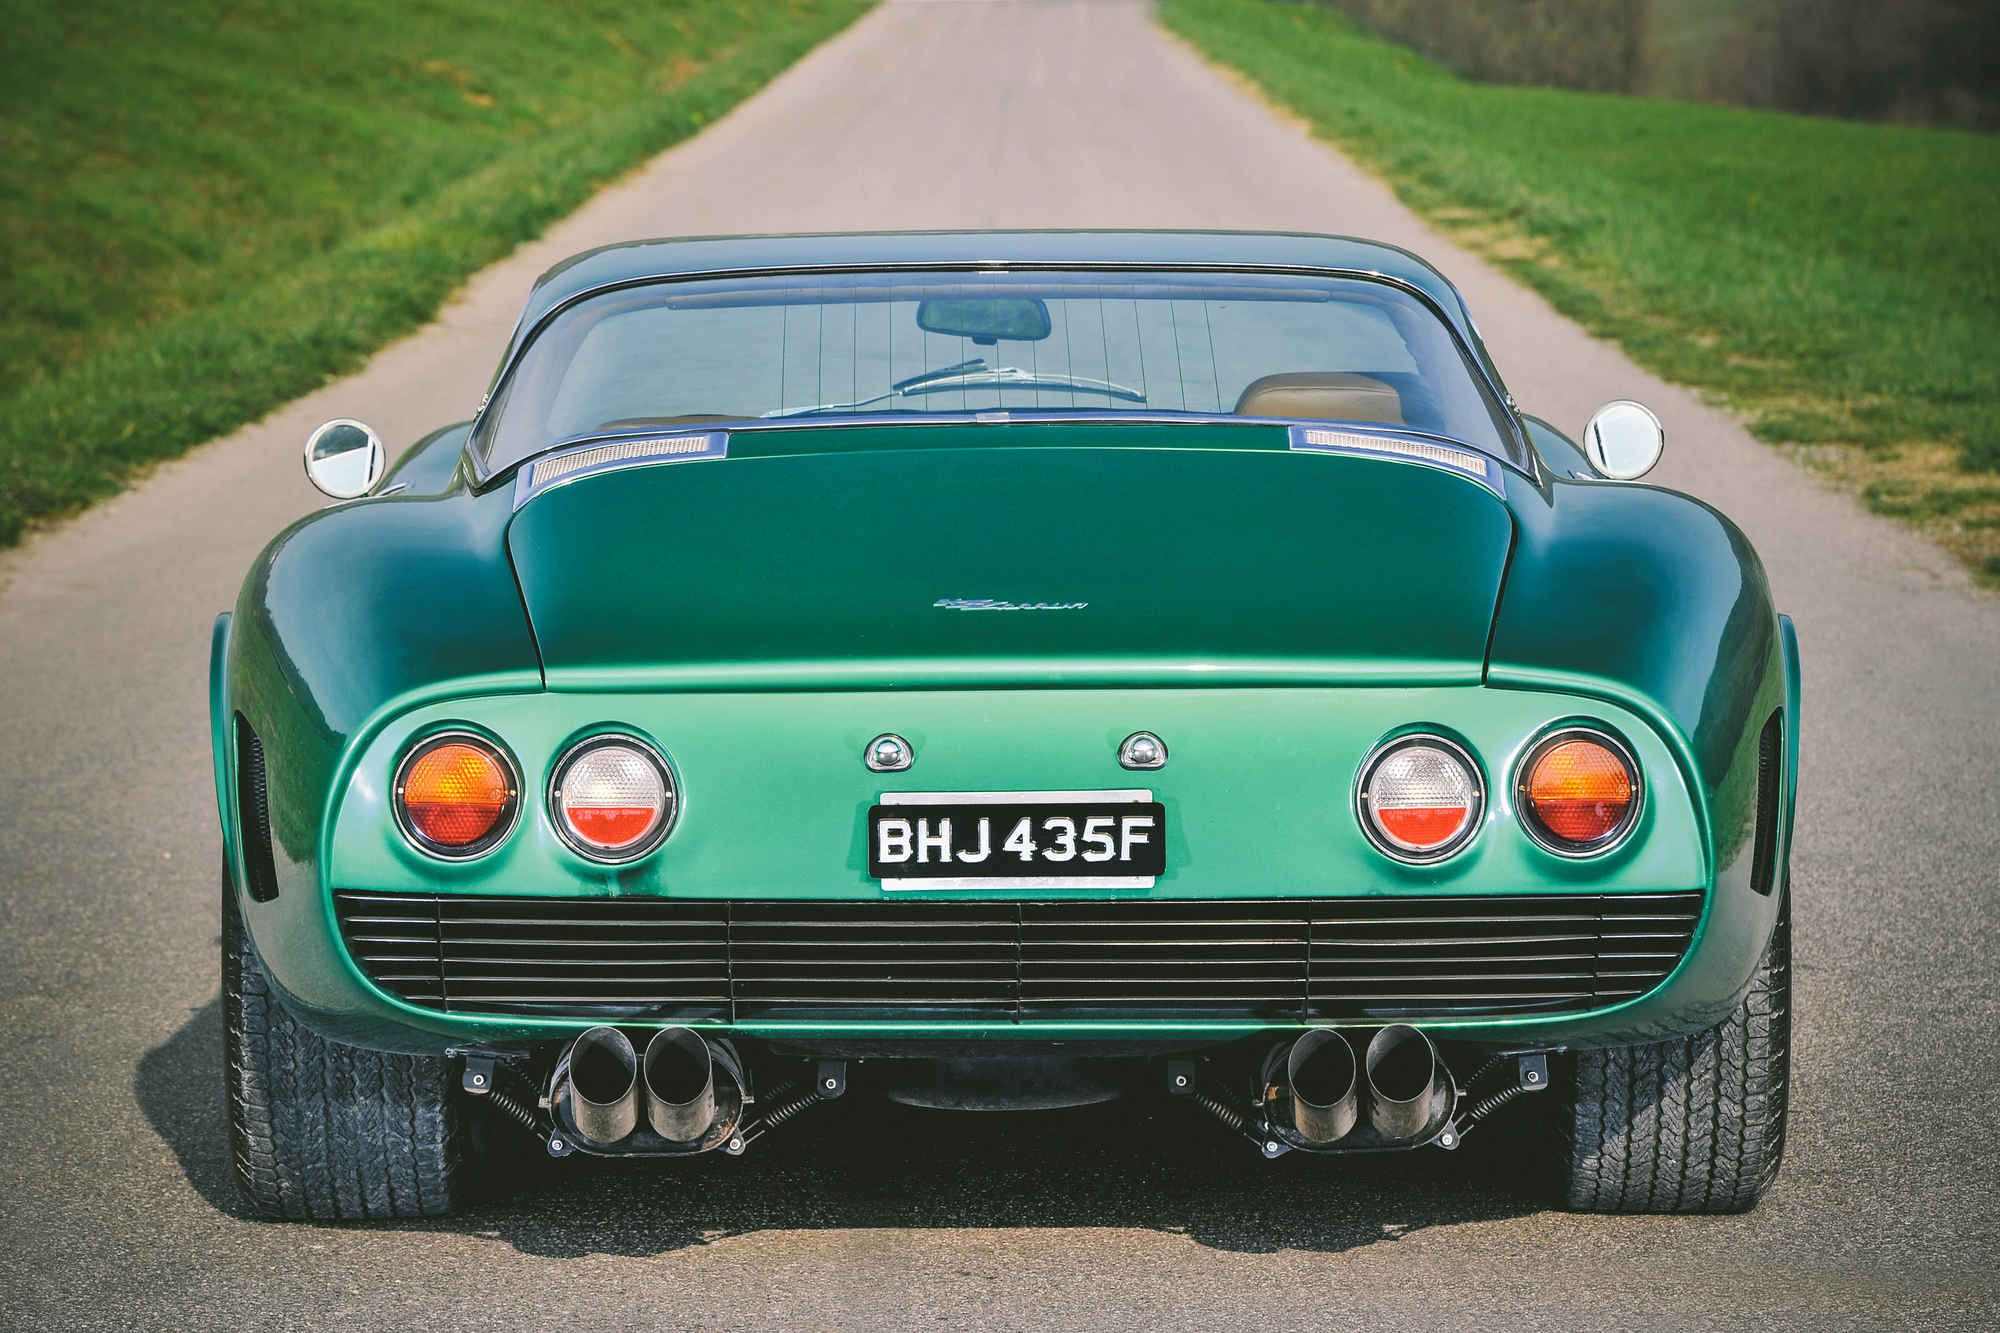 This Bizzarrini 5300 GT Strada Alloy is the Sexiest Car You've Never Heard Of - Supercompressor.com